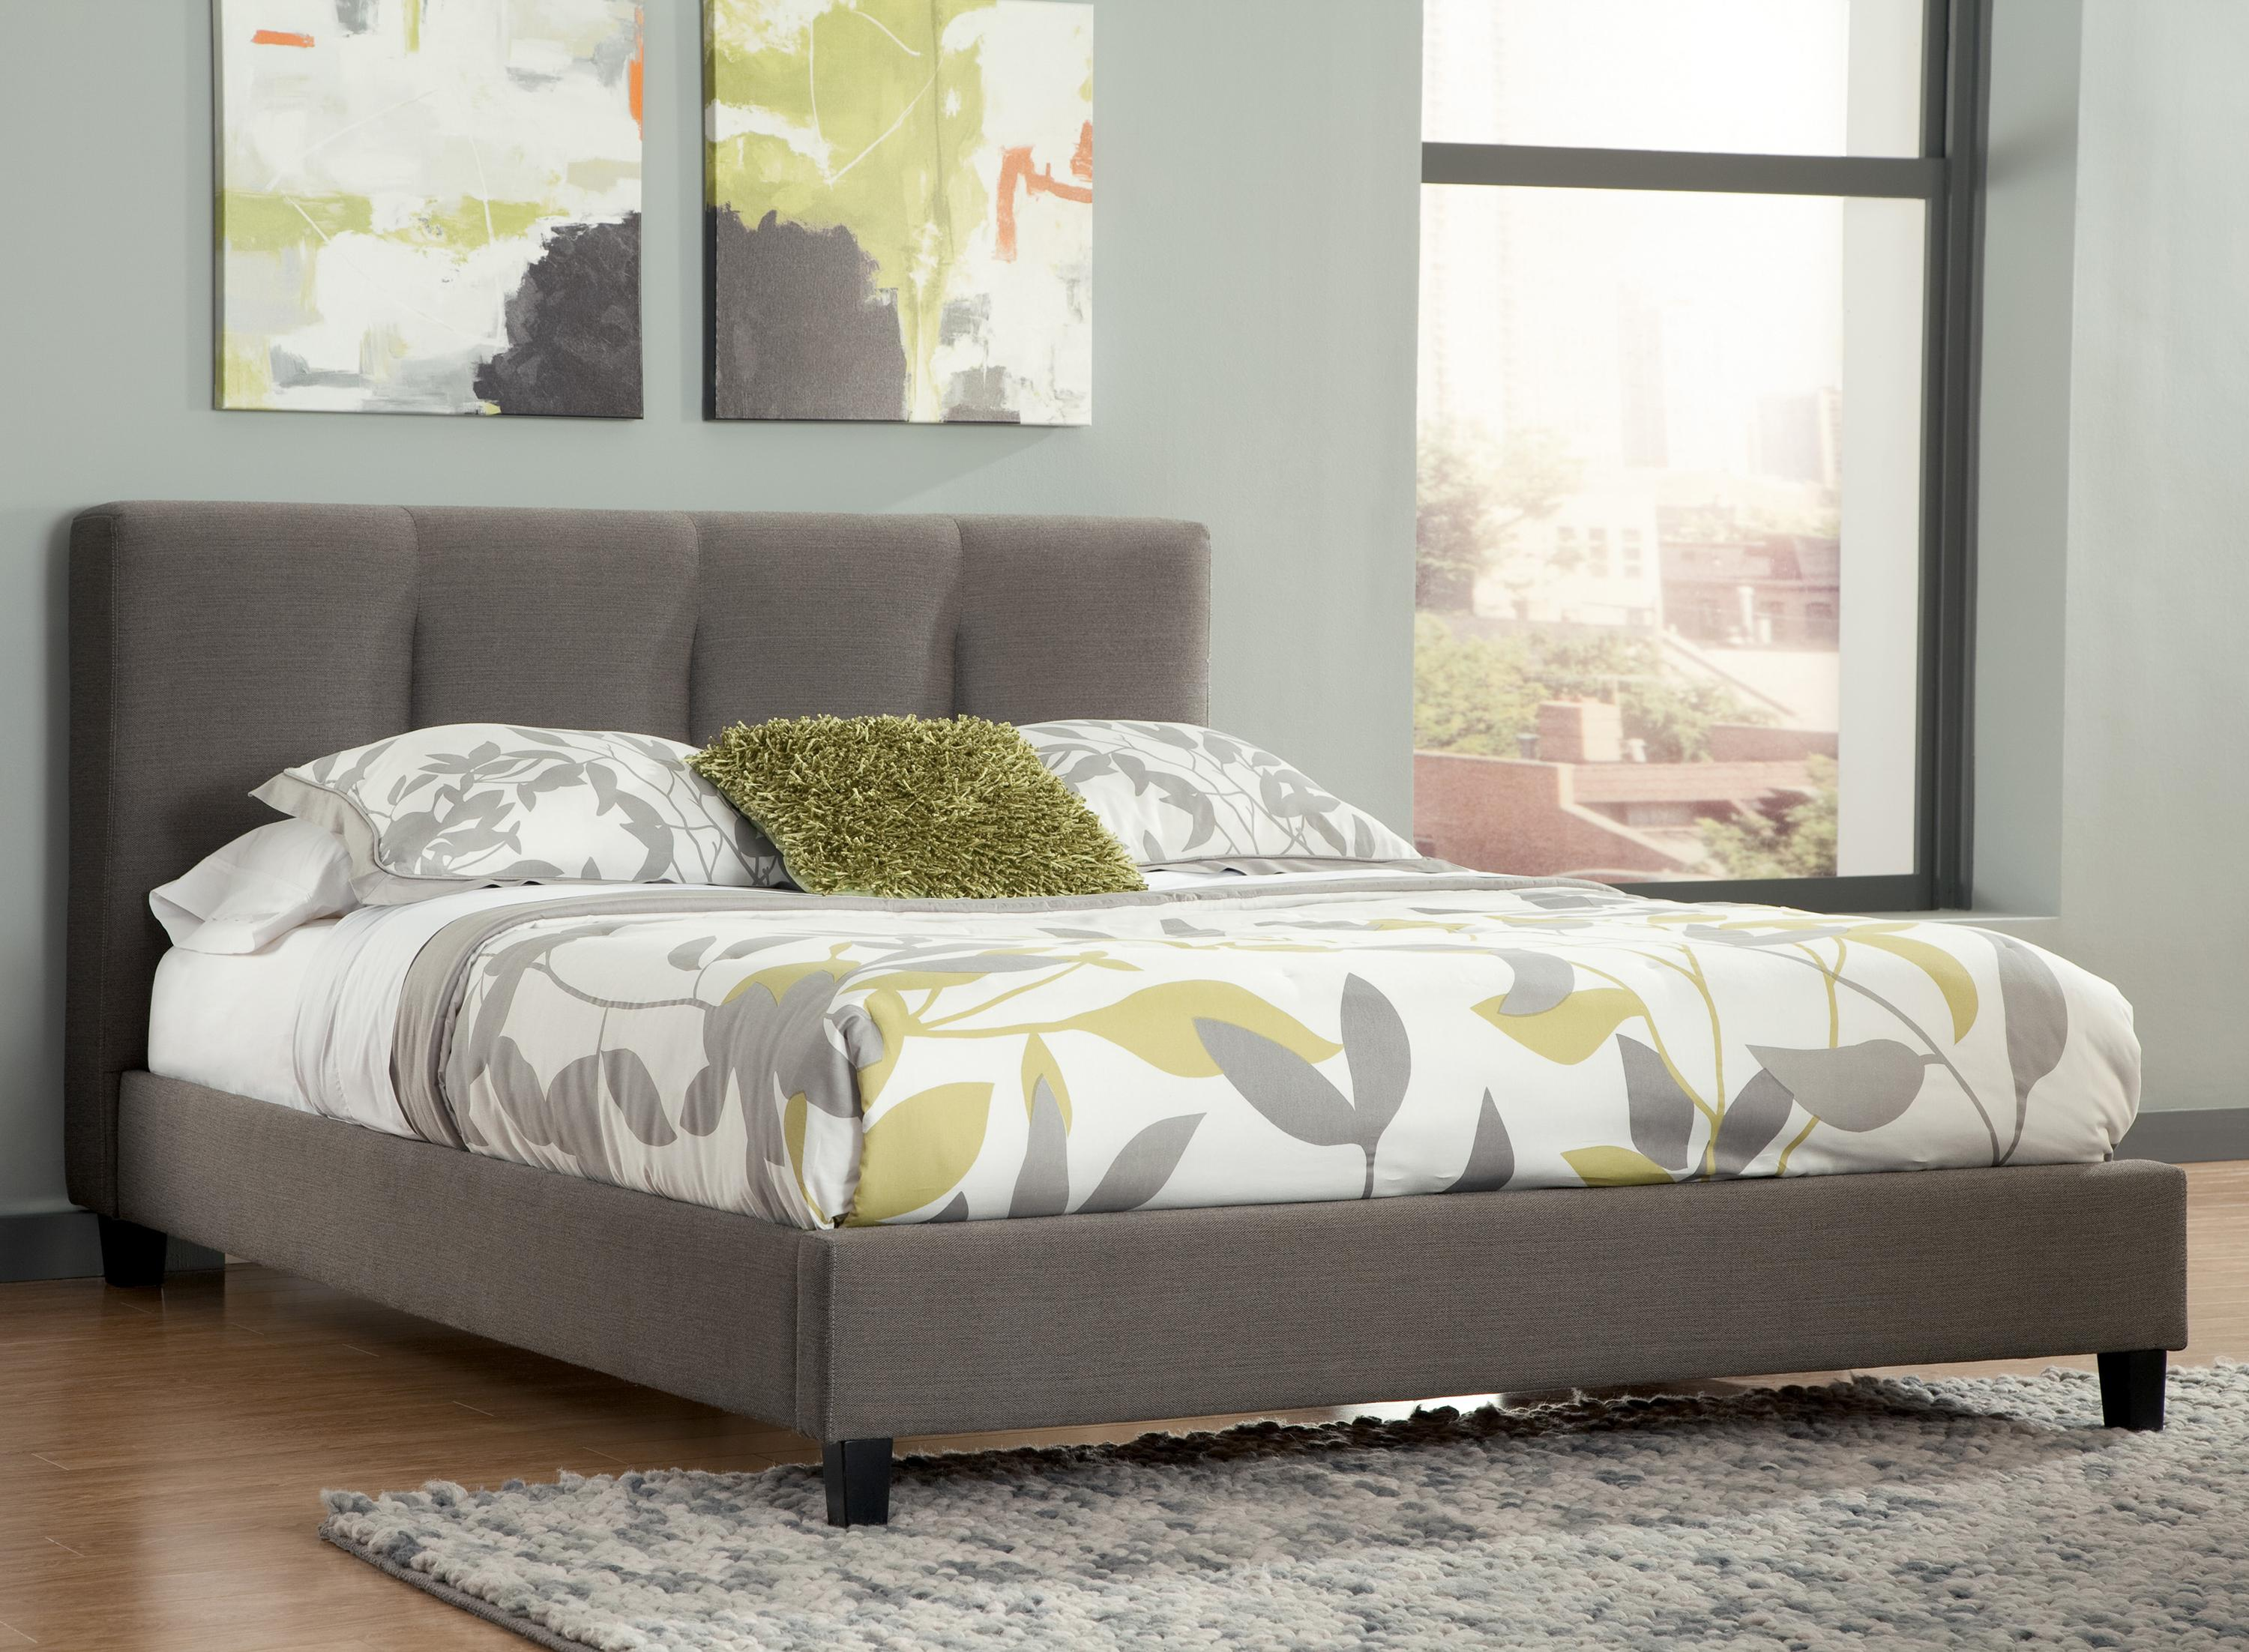 King Upholstered Platform Bed With Channel Tufted Headboard By Signature Design By Ashley Wolf